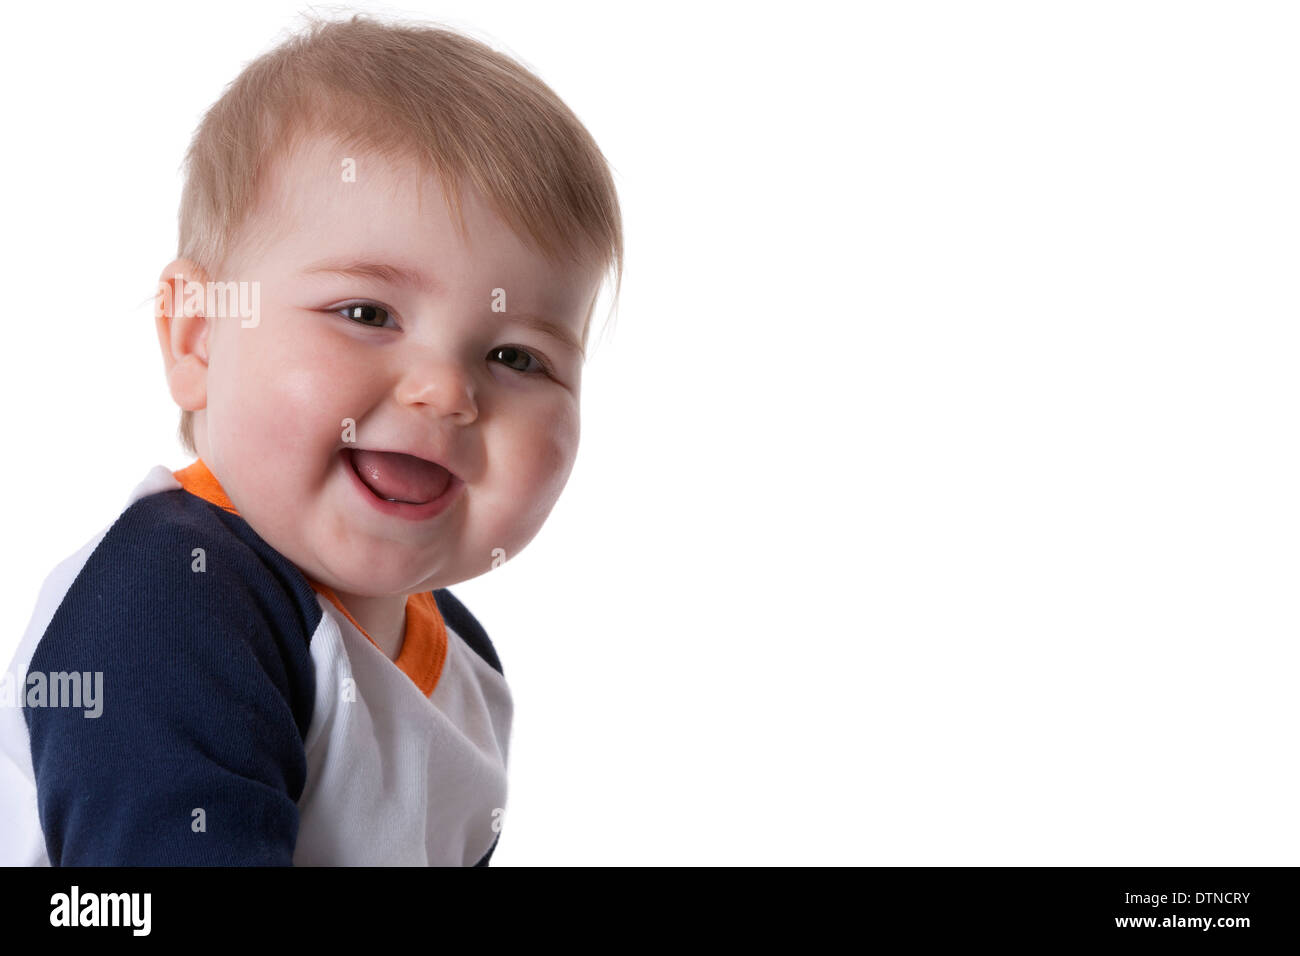 Chubby Baby White Background High Resolution Stock Photography And Images Alamy